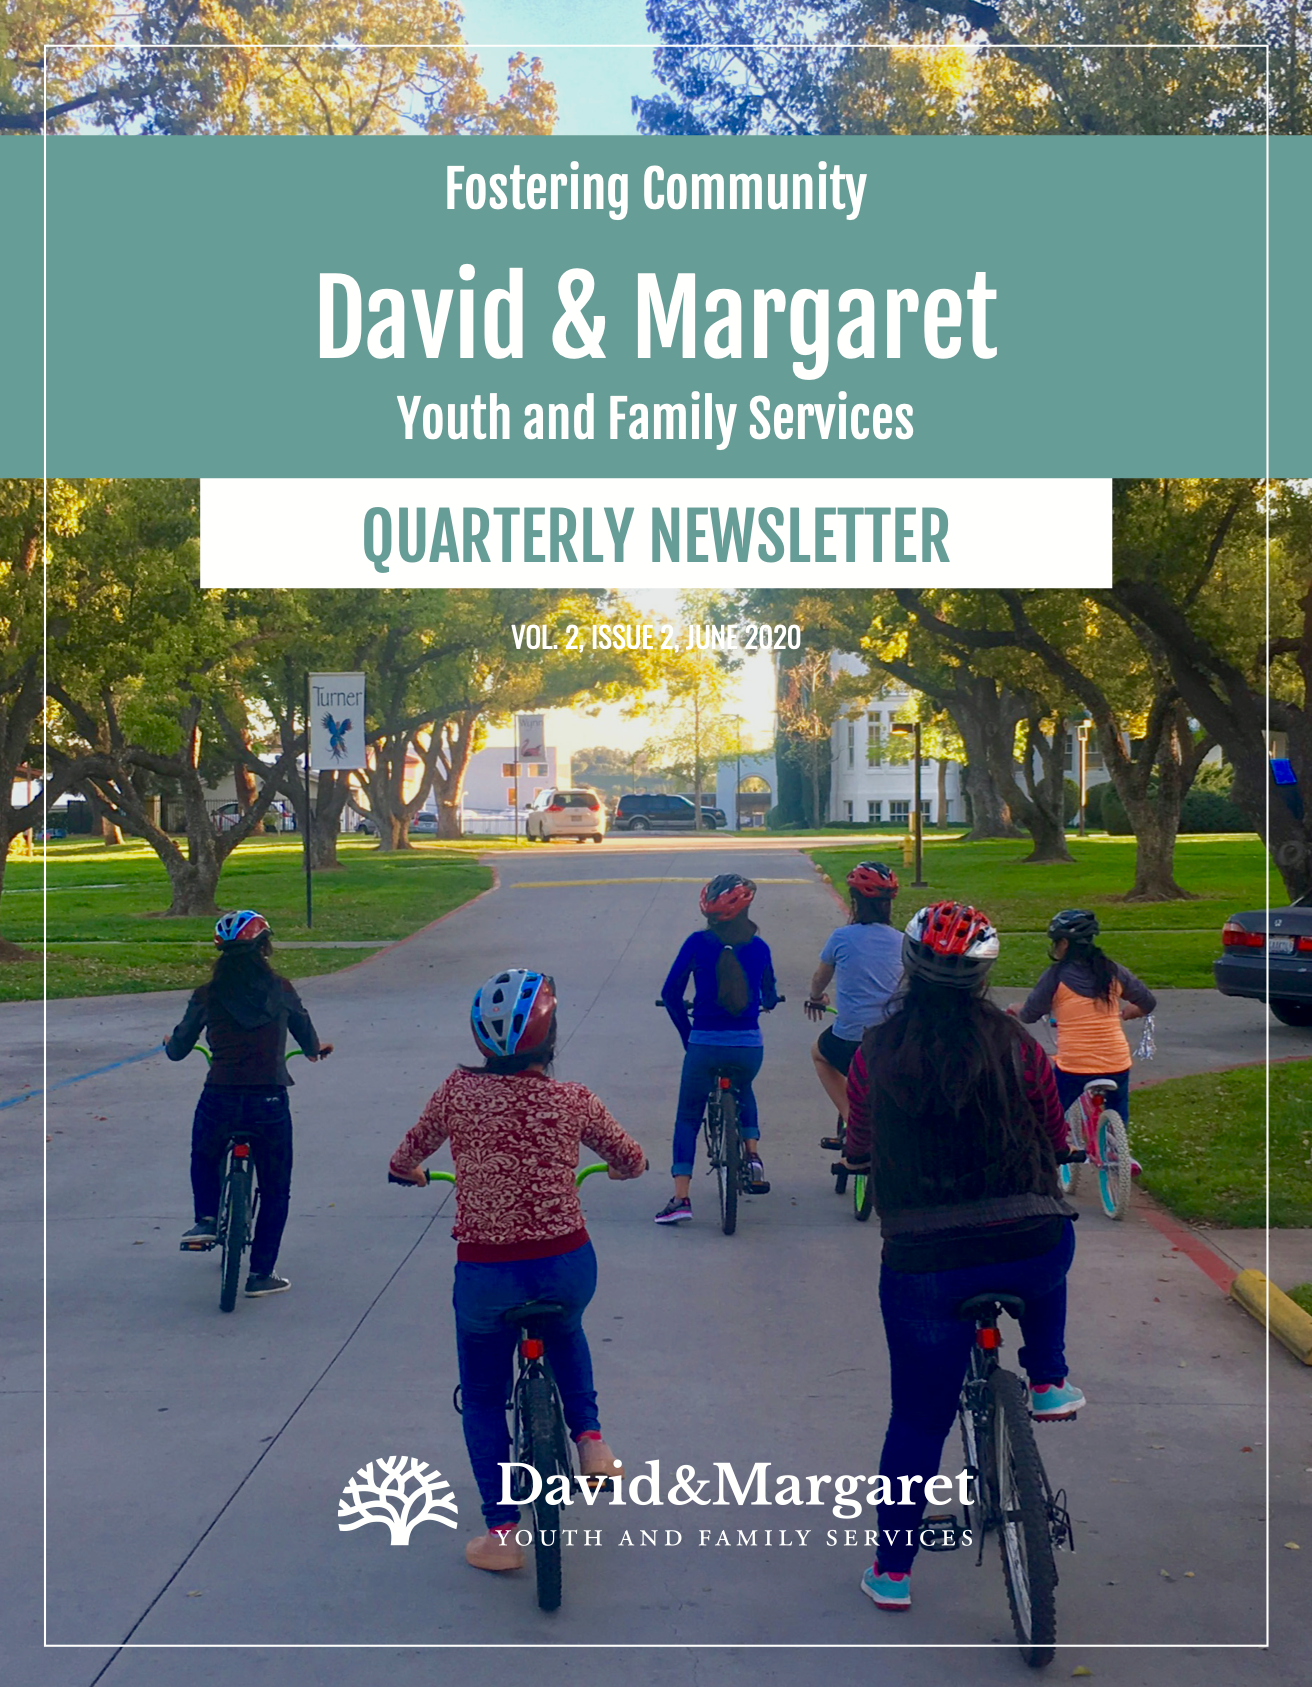 David & Margaret Print Newsletter Vol. 2 Issue 2 2020